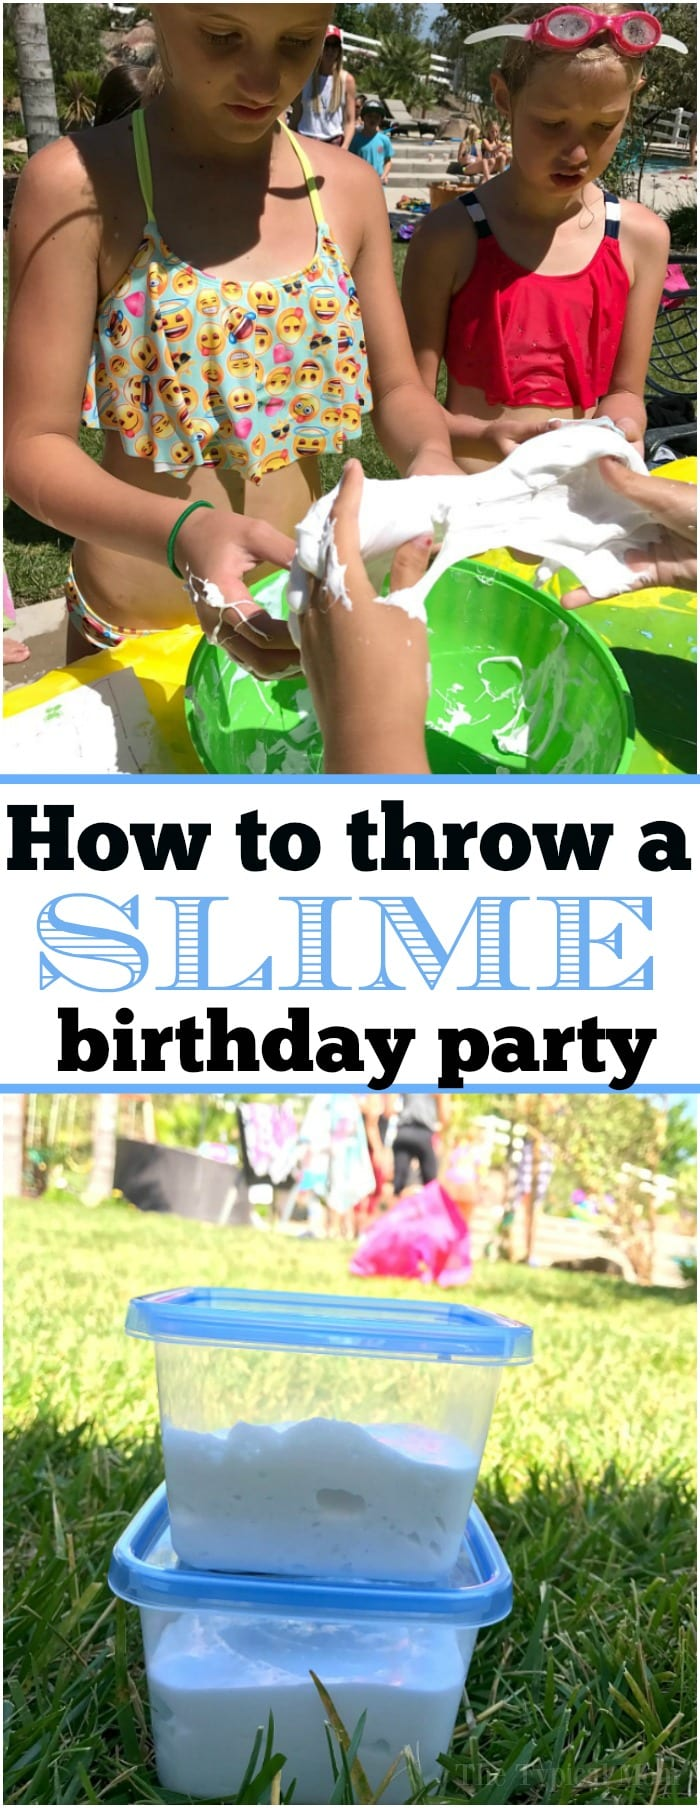 It's all the rage! This is how to throw a slime birthday party which will make you the coolest parent around and the kids will have an absolute blast! With just a few ingredients and some outdoor fun you too can throw the perfect slime party for a boy or girl. I'ts fun for all ages. #slime #birthdayparty #party #birthday #boy #girl #games #activities